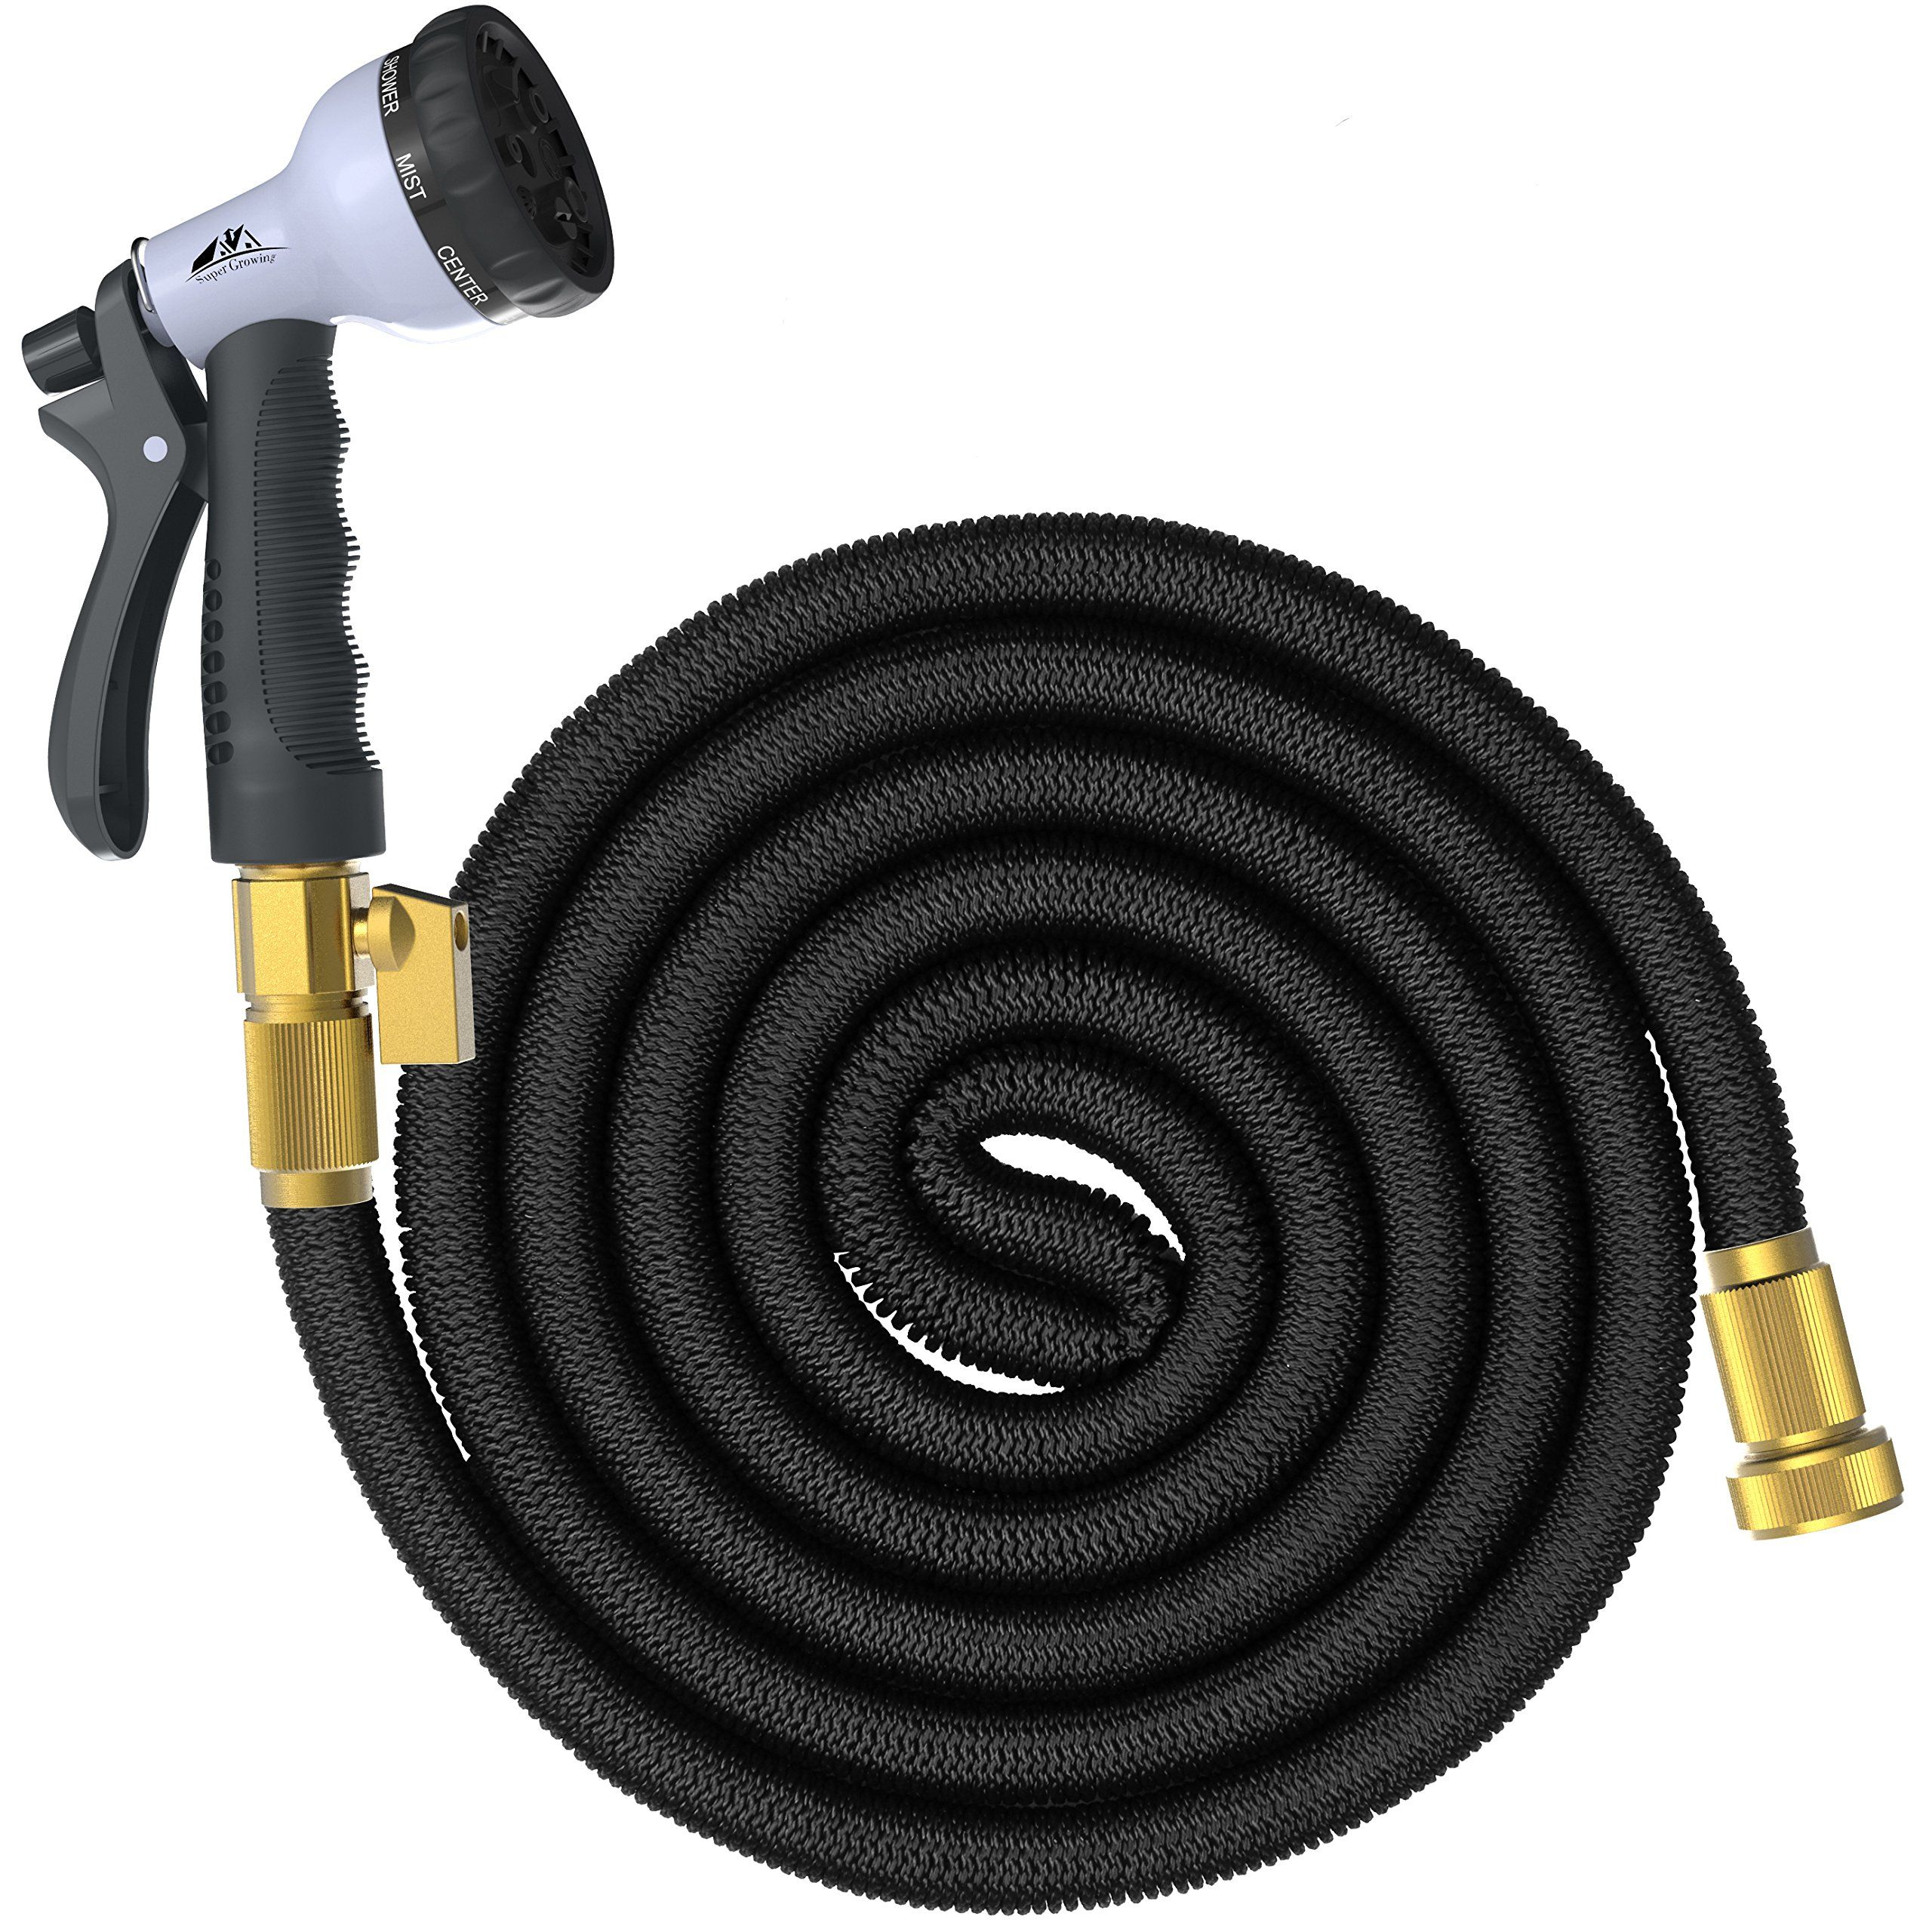 100 ft garden hose. supergrowing 100 feet flexible expandable rubber garden hose with solid brass connector and valve,double ft u